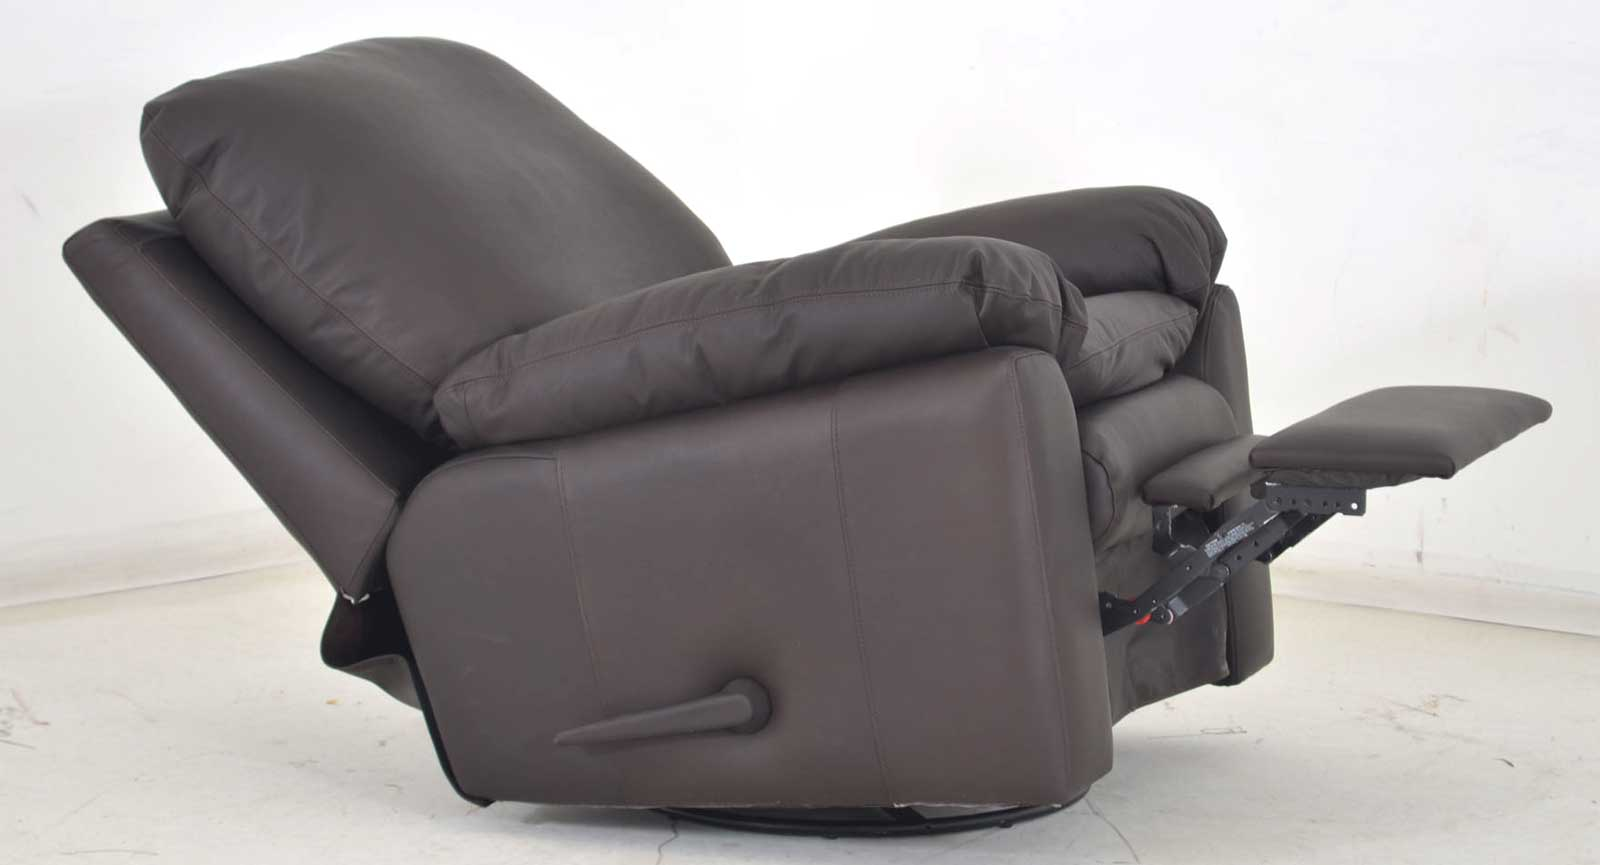 Swivel Glider Recliner A & Santa Fe Sofa u2039u2039 The Leather Sofa Company islam-shia.org